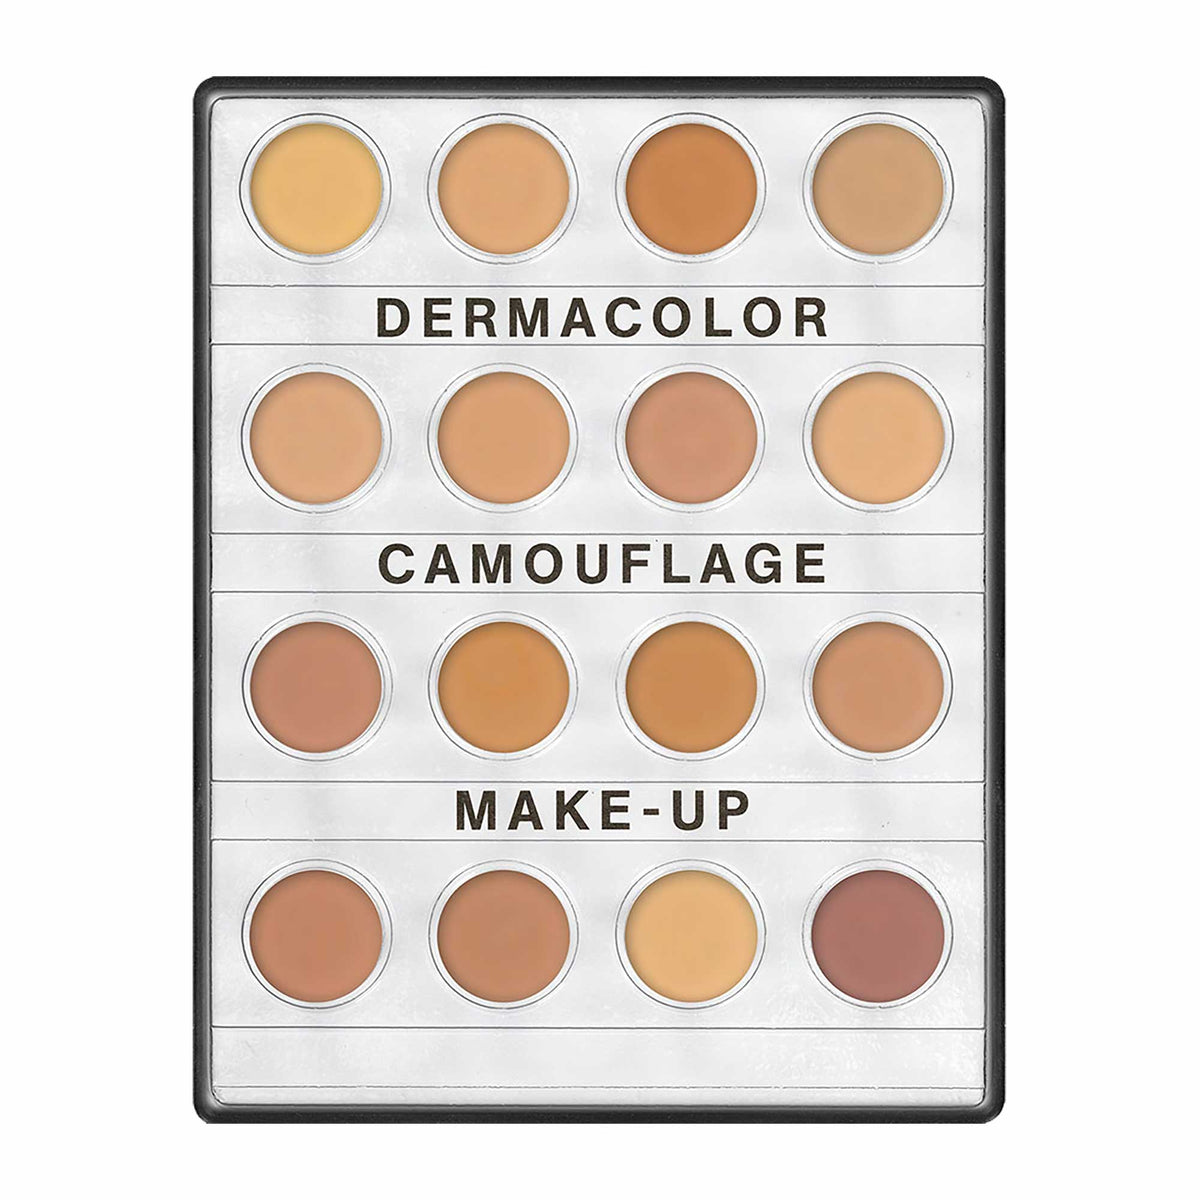 Dermacolor Camouflage Creme Mini 16 Palette - Medium